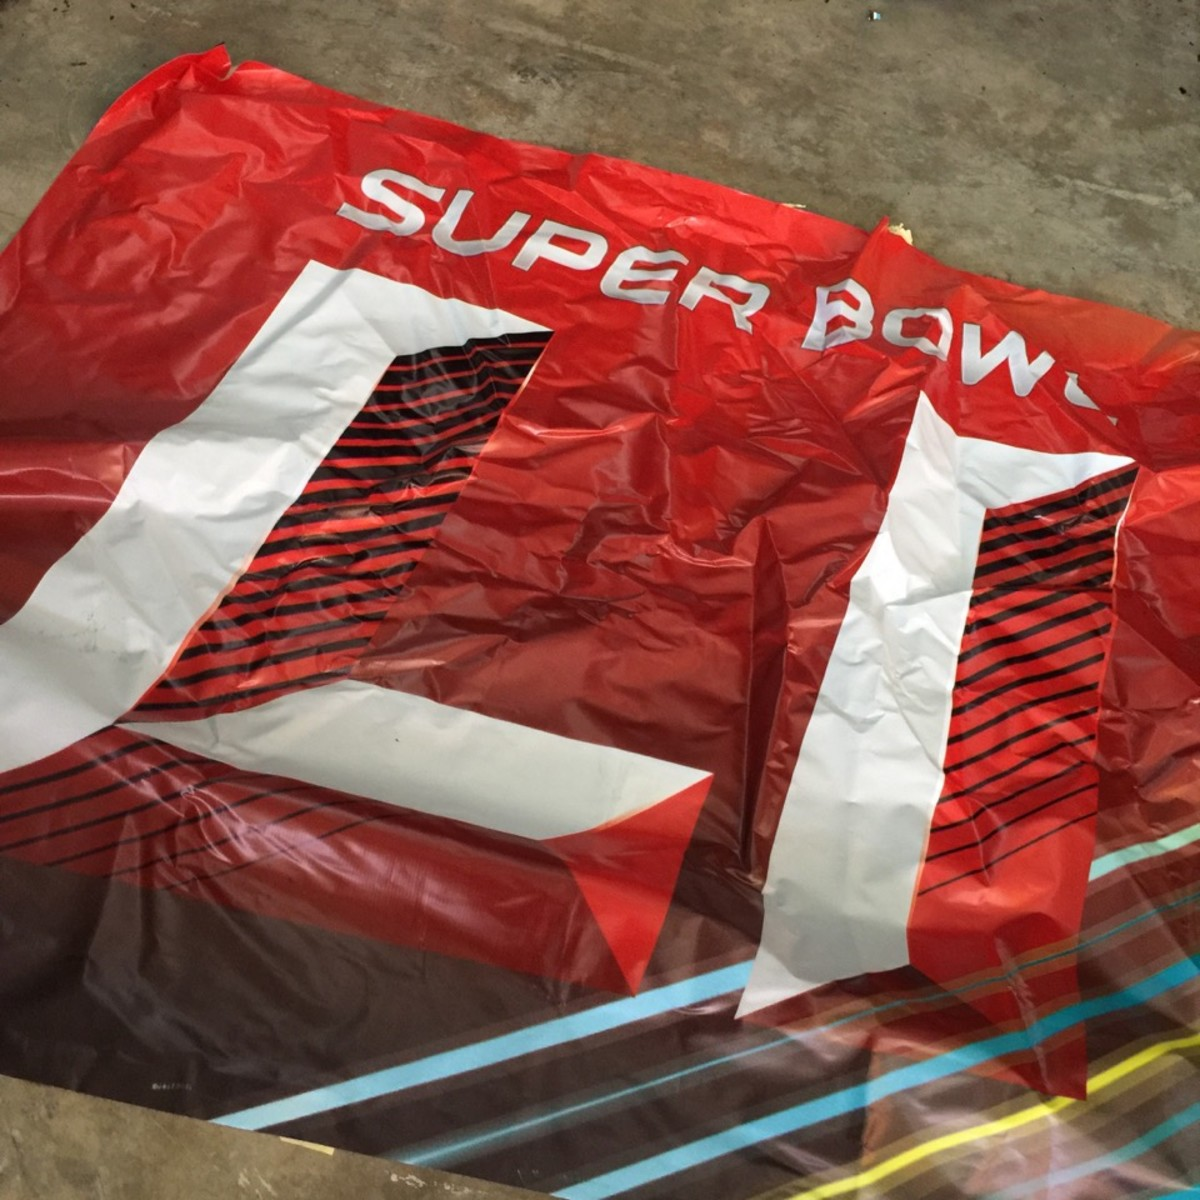 Super Bowl materials that are part of recycling program